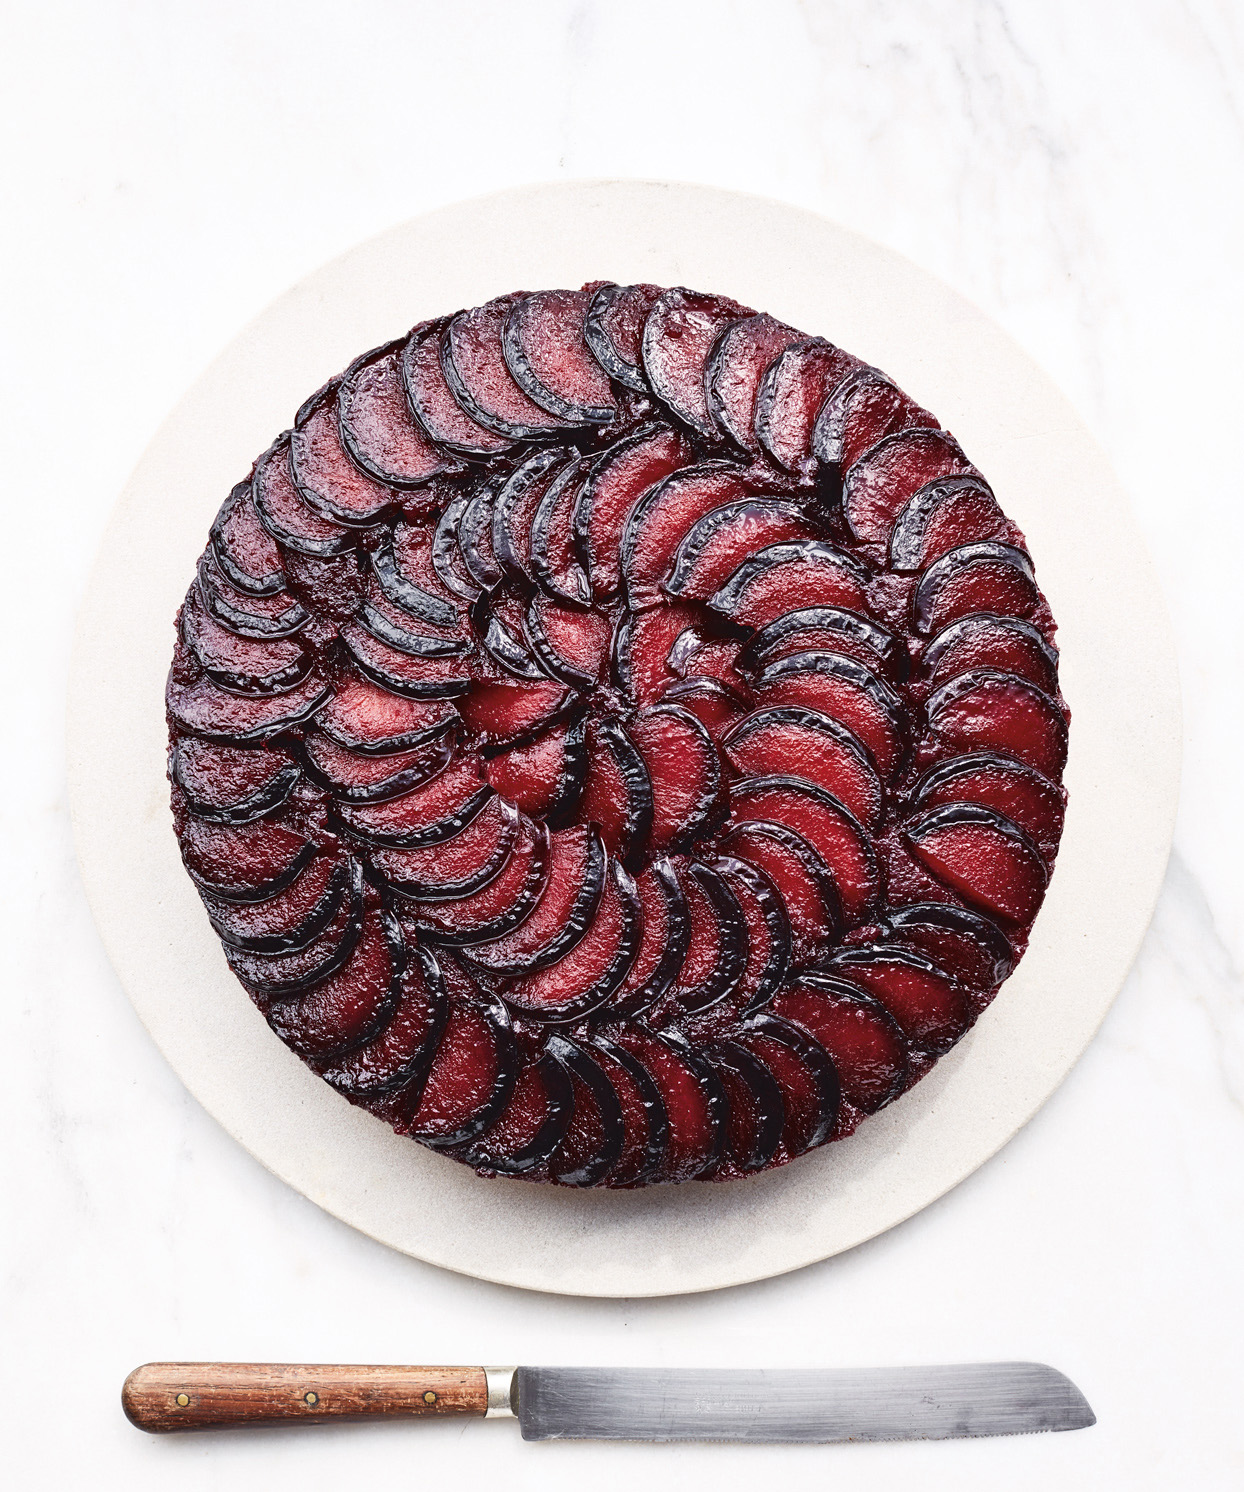 plum cake with knife